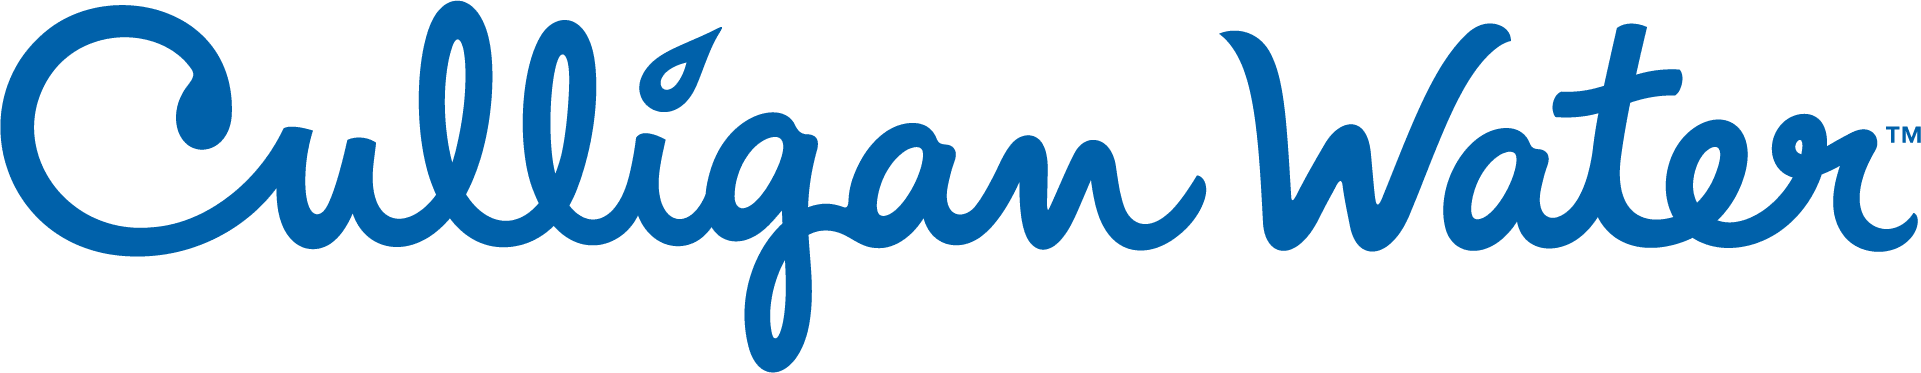 Culligan Water of Kansas City